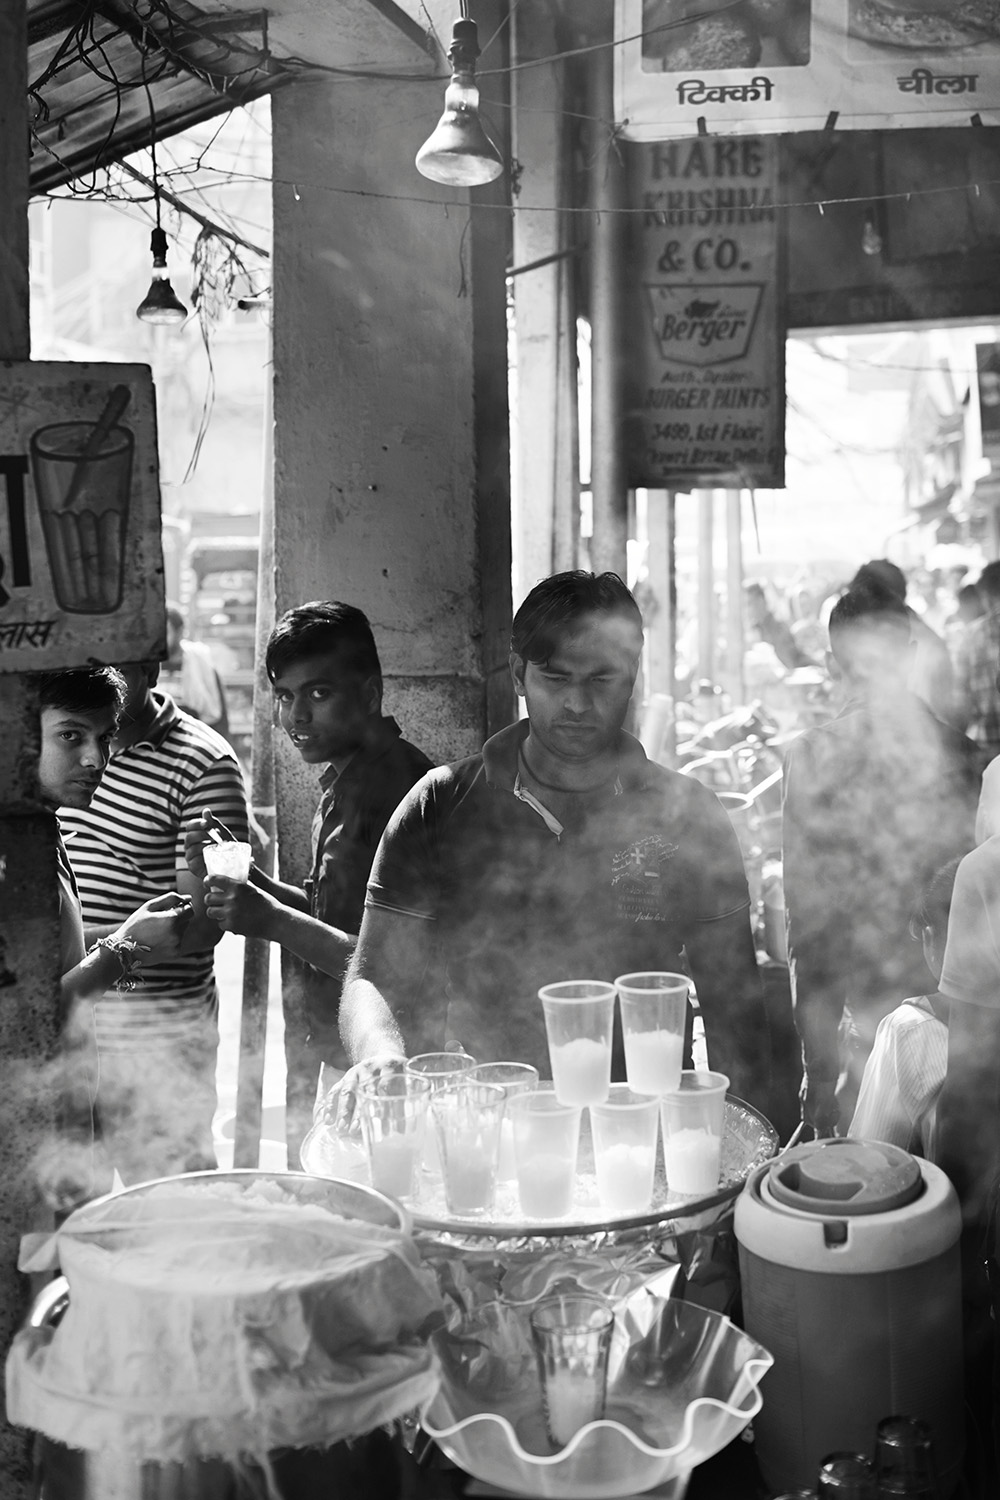 Chai on streets of India